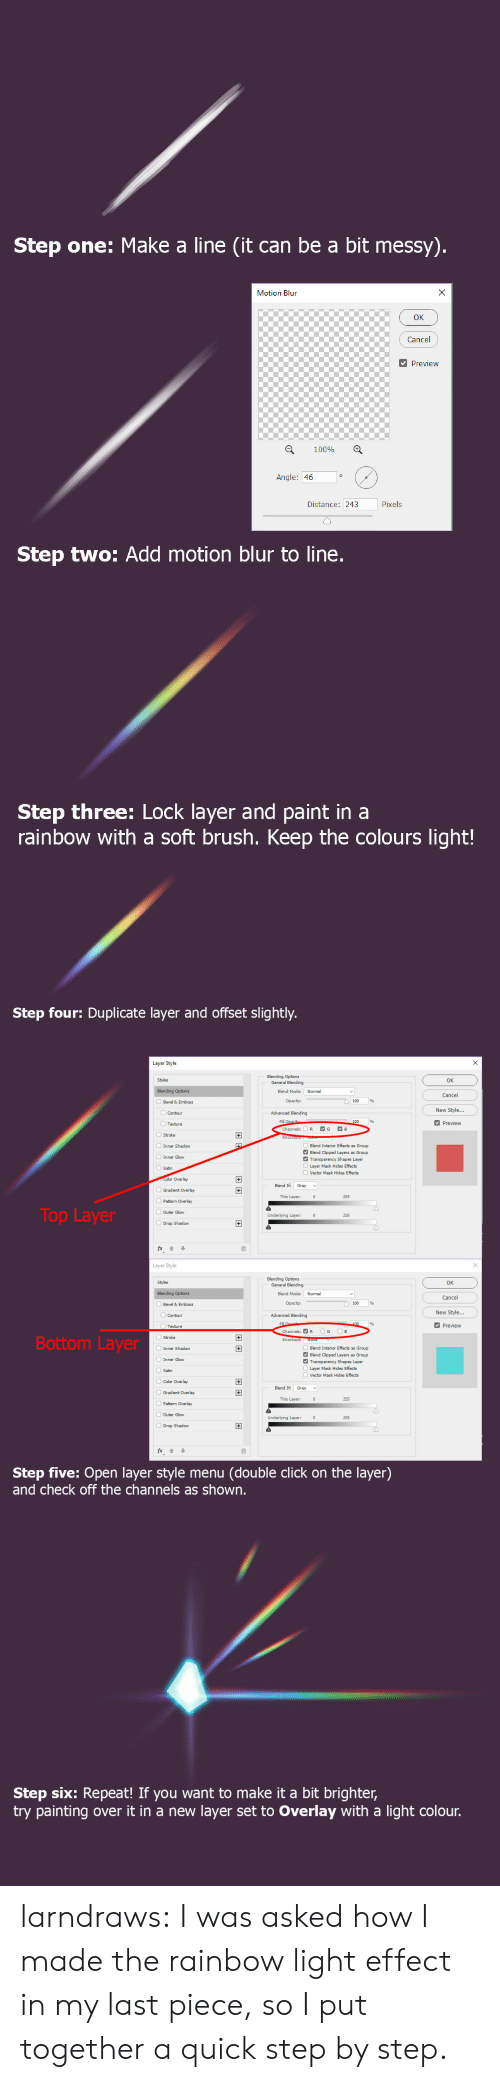 By Step: Step one: Make a line (it can be a bit messy).  X  Motion Blun  Cancel  Preview  100%  Angle: 46  Pixels  Distance: 243  Step two: Add motion blur to line.  Step three: Lock layer and paint in a  rainbow with a soft brush. Keep the colours light!   Step four: Duplicate layer and offset slightly.  Layer Style  Blending Options  General Blending  Styles  OK  Blending Options  Blend Mode:  Normal  Cancel  Opacity:  Bevel & Emboss  New Style...  Advanced Blending  Contour  Fill Opacib  Channels:  Preview  Texture  G  B  R  +  Stroke  Inner Shadow  Blend Interior Effects  Blend Clipped Layers  Transparency Shapes Layer  s Group  Group  Inner Glow  Layer Mask Hides Effects  Satin  Vector Mask Hides Effects  Color Overlay  +  Blend If  Gray  Gradient Overlay  This Layer:  255  Pattern Overlay  Top Layer  OOuter Glow  Underlying Layer:  255  Drop Shadow  Layer Style  Blending Options  General Blending  Styles  OK  Normal  Blending Options  Blend Mode:  Cancel  Opacity:  Bevel & Emboss  New Style...  Advanced Blending  Contour  Fill  100  Preview  Texture  G  B  Channels: R  Bottom Layer  Knockout: None  Inner Shadow  Blend Interior Effects  Blend Clipped Layers  Transparency Shapes Layer  Layer Mask Hides Effects  +  s Group  Group  Inner Glow  Satin  Vector Mask Hides Effects  Color Overlay  +  Blend If  Gradient Overlay  +  This Layer:  255  Pattern Overlay  Outer Glow  Underlying Layer:  255  Drop Shadow  fx  Step five: Open layer style menu  and check off the channels as shown.  (double click on the layer)   Step six: Repeat! If you want to make it a bit brighter,  try painting  layer set to Overlay with a light colour.  over it in a new larndraws:  I was asked how I made the rainbow light effect in my last piece, so I put together a quick step by step.